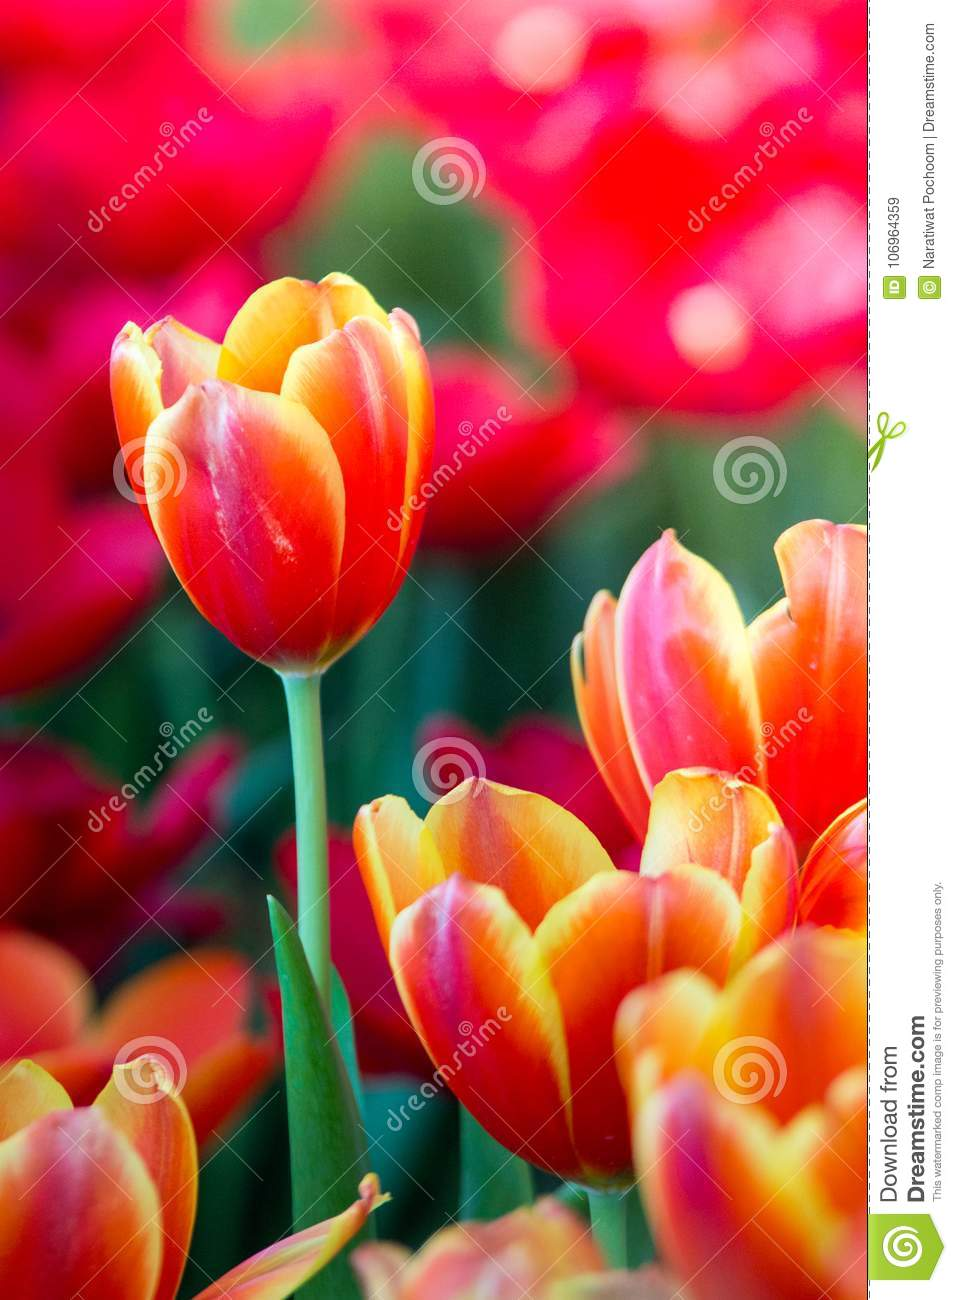 Tulips flowers beautiful bouquet tulips colorful flowers background wallpaper